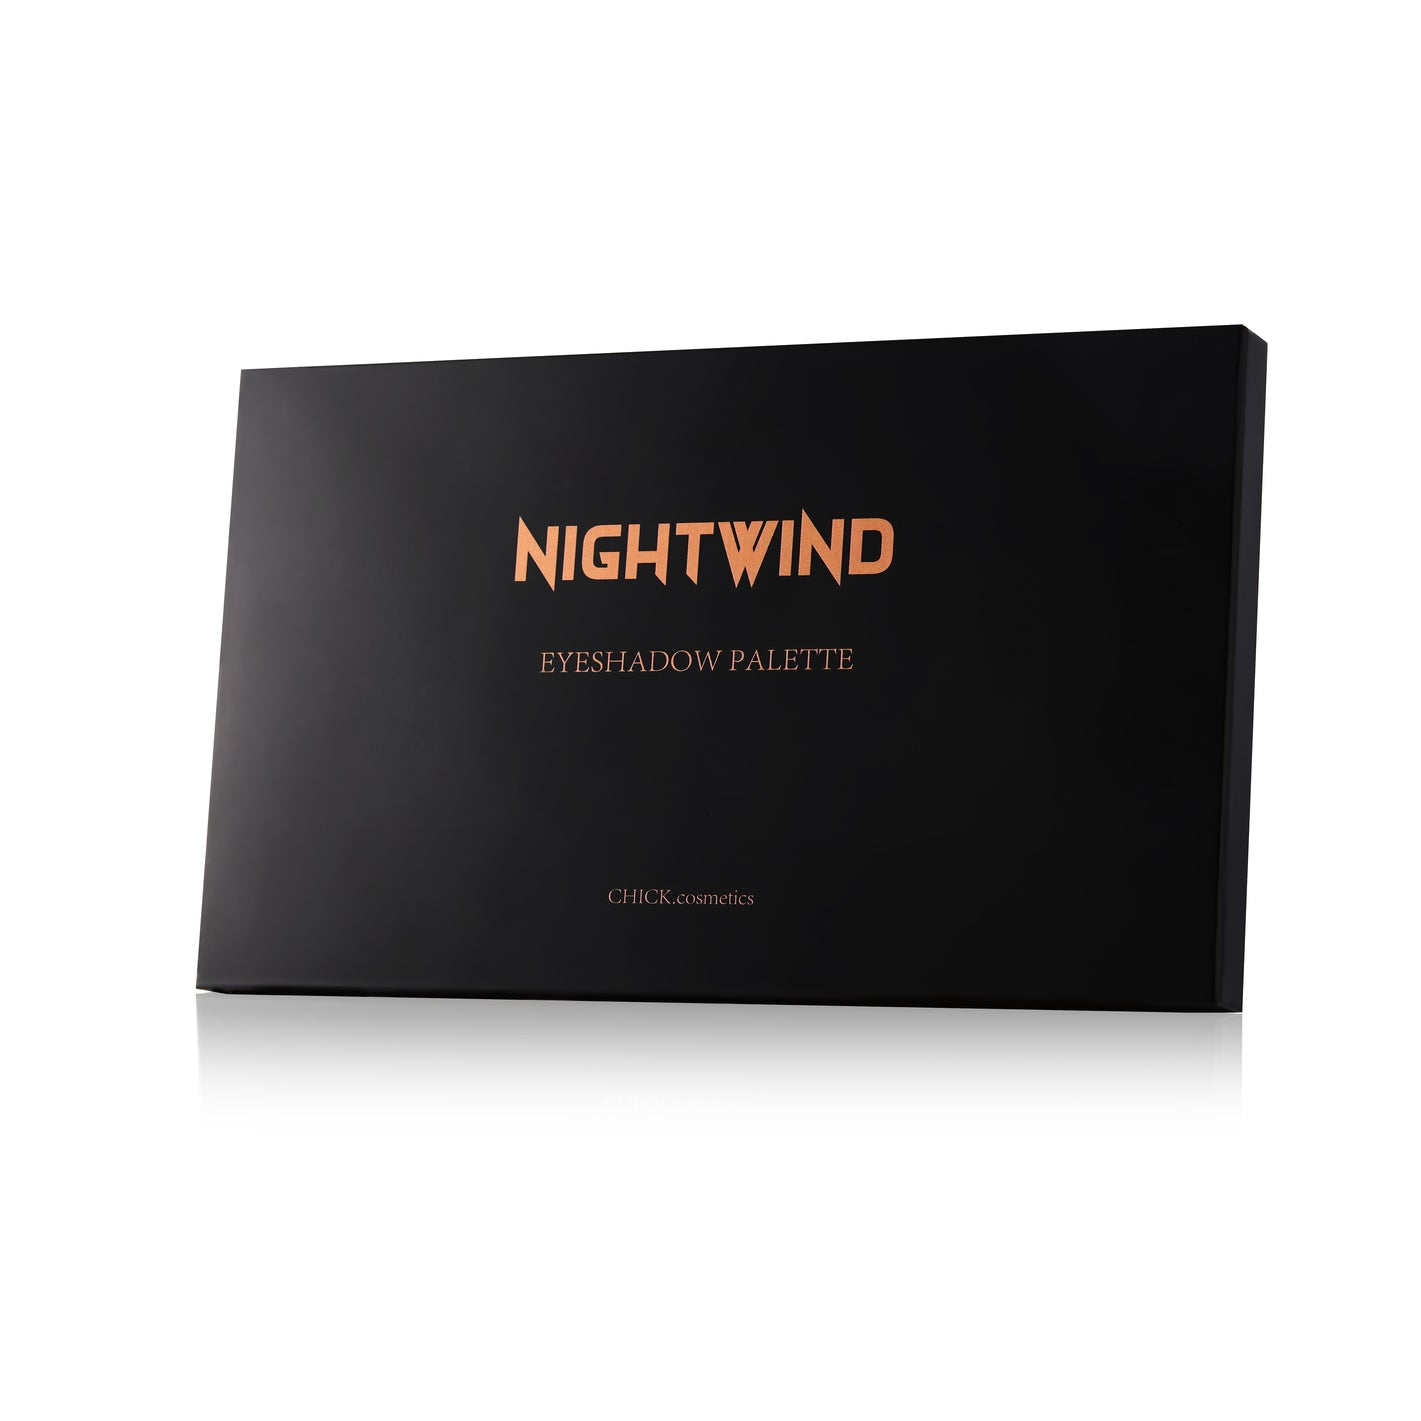 Nightwind Eyeshadow Palette